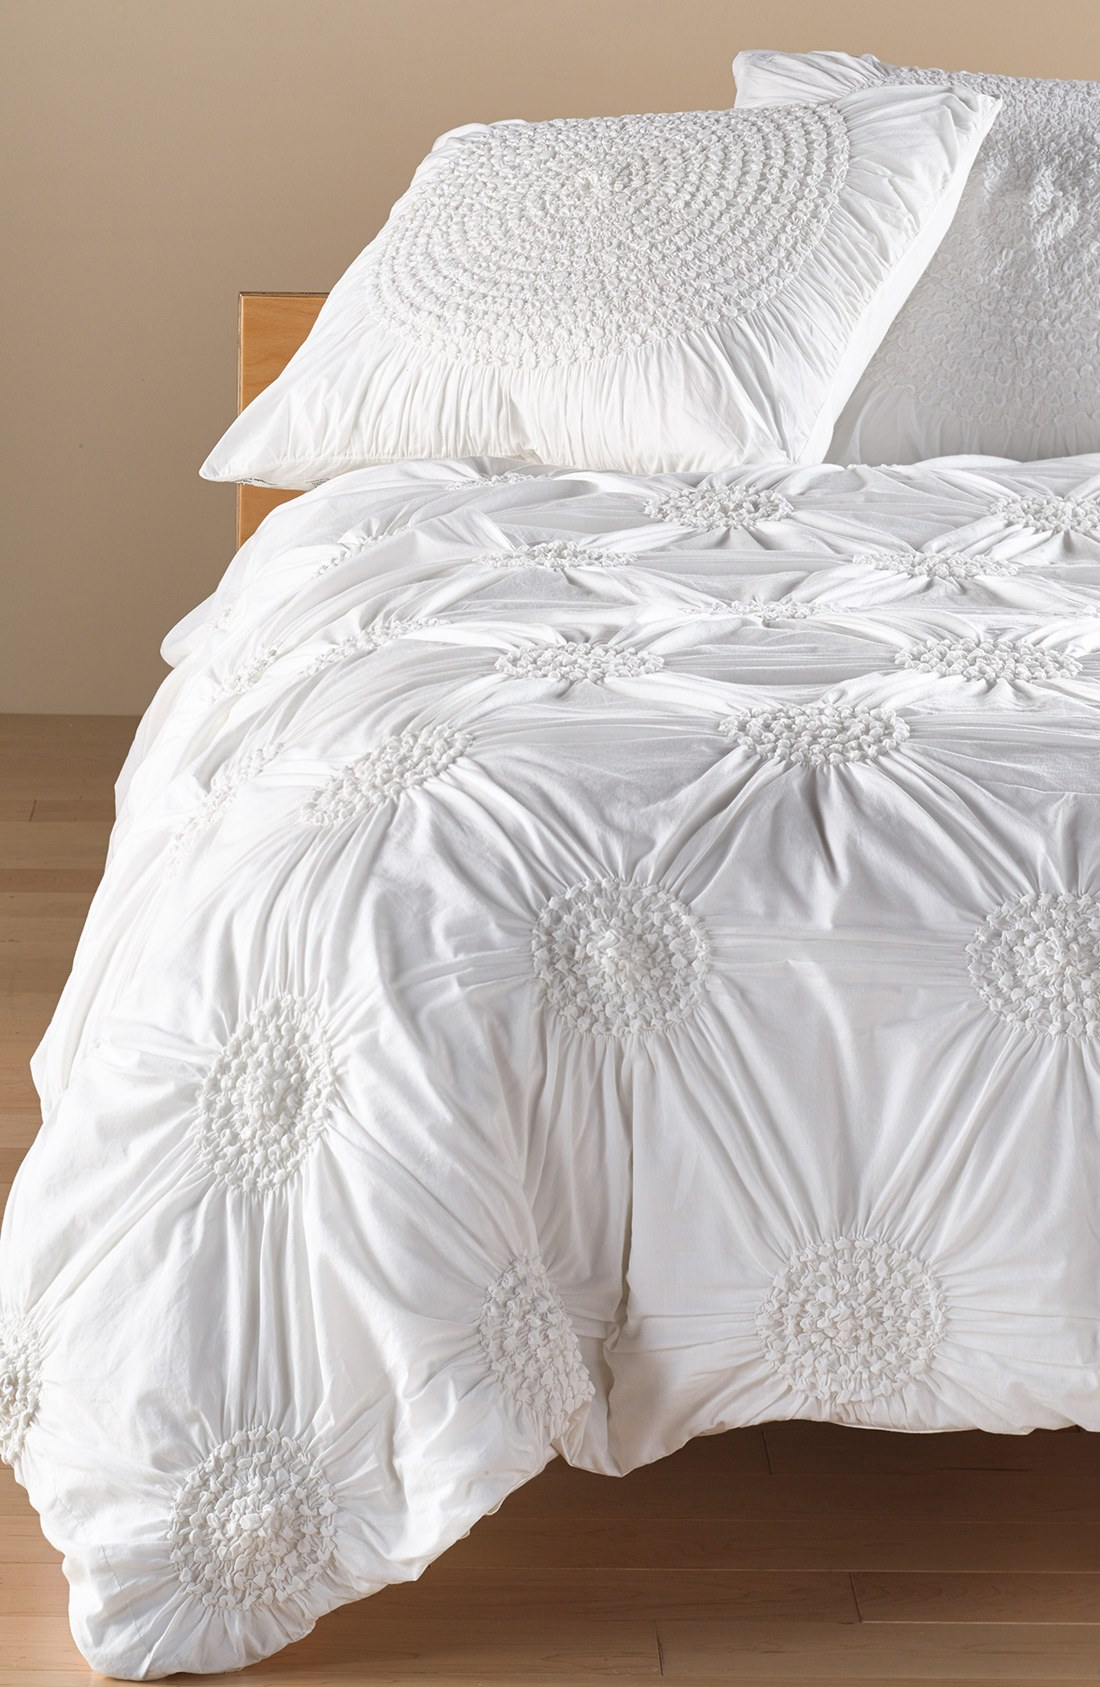 Nordstrom at Home 'Chloe' Duvet Cover & Shams | Nordstrom